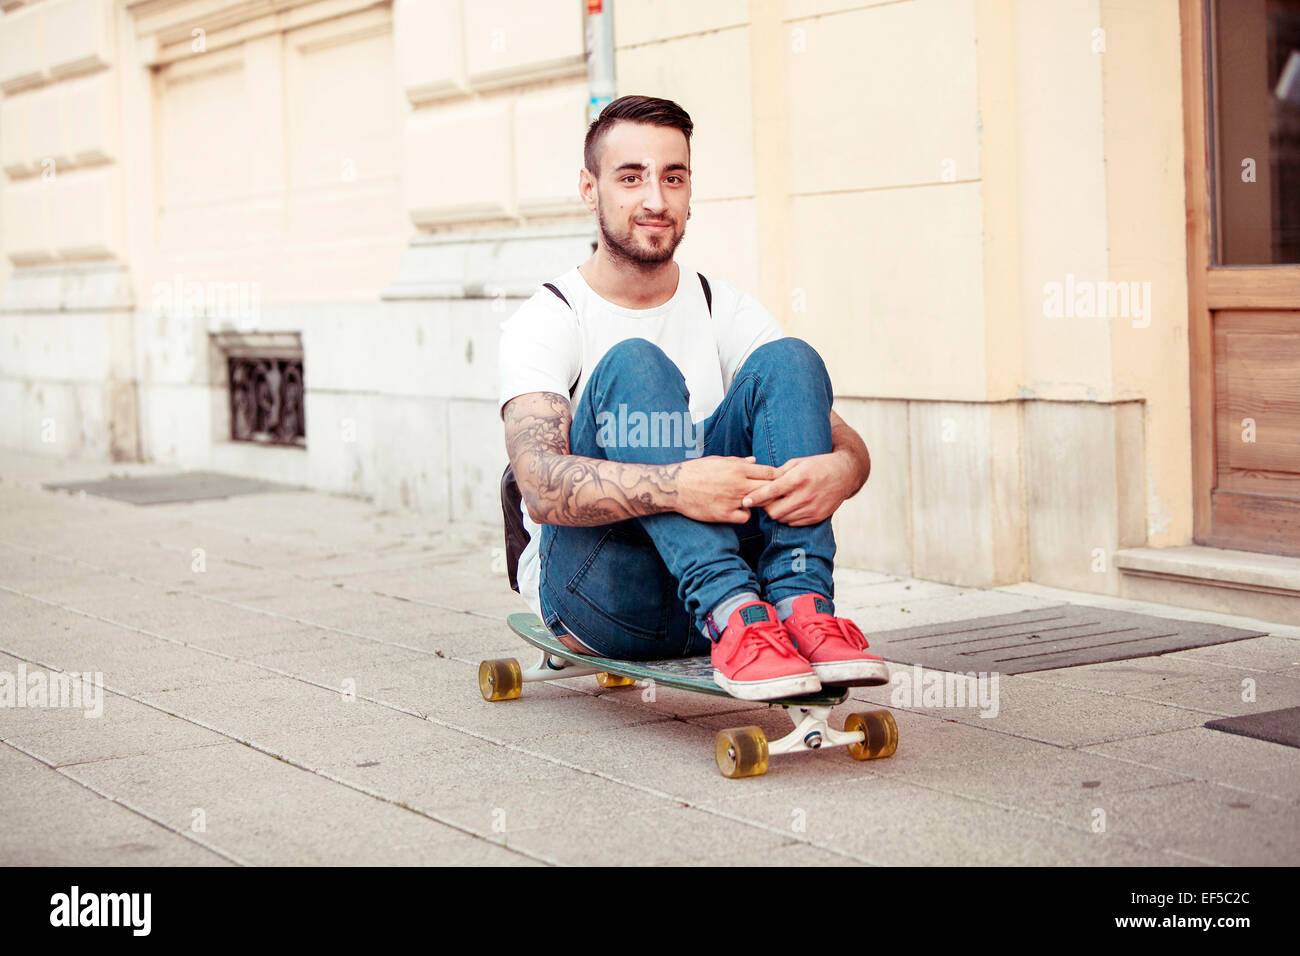 Young man with skateboard on sidewalk Stock Photo